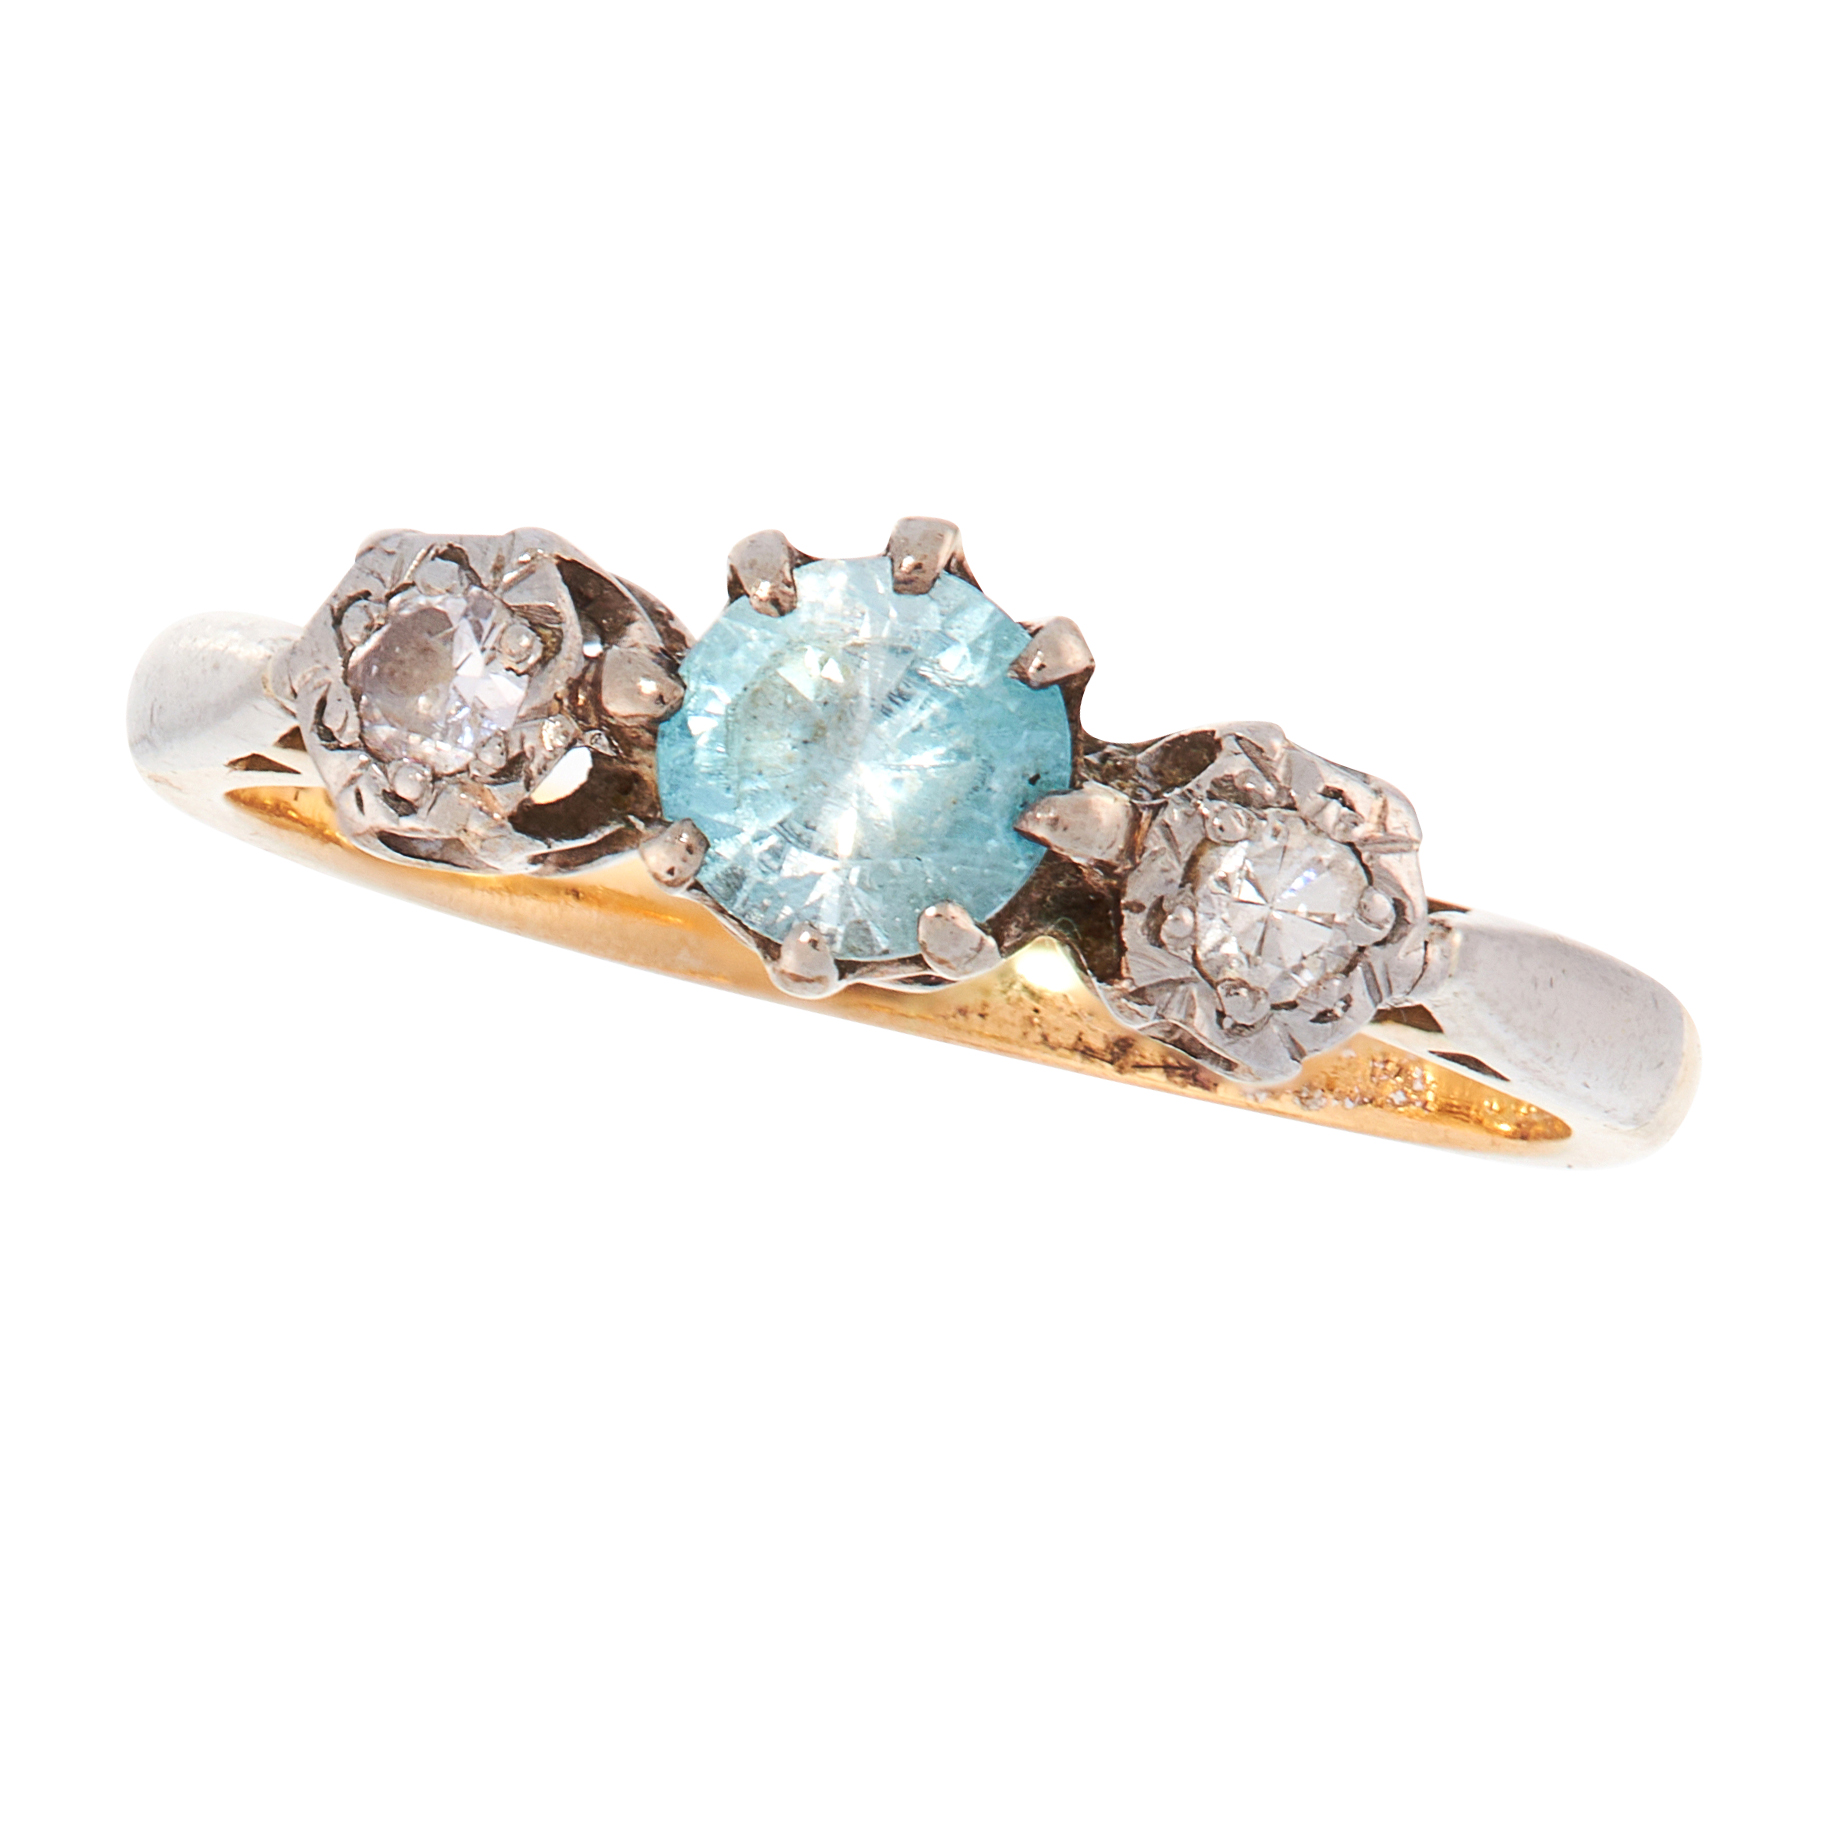 A BLUE ZIRCON AND DIAMOND DRESS RING, CIRCA 1930 in 18ct yellow gold and platinum, set with a